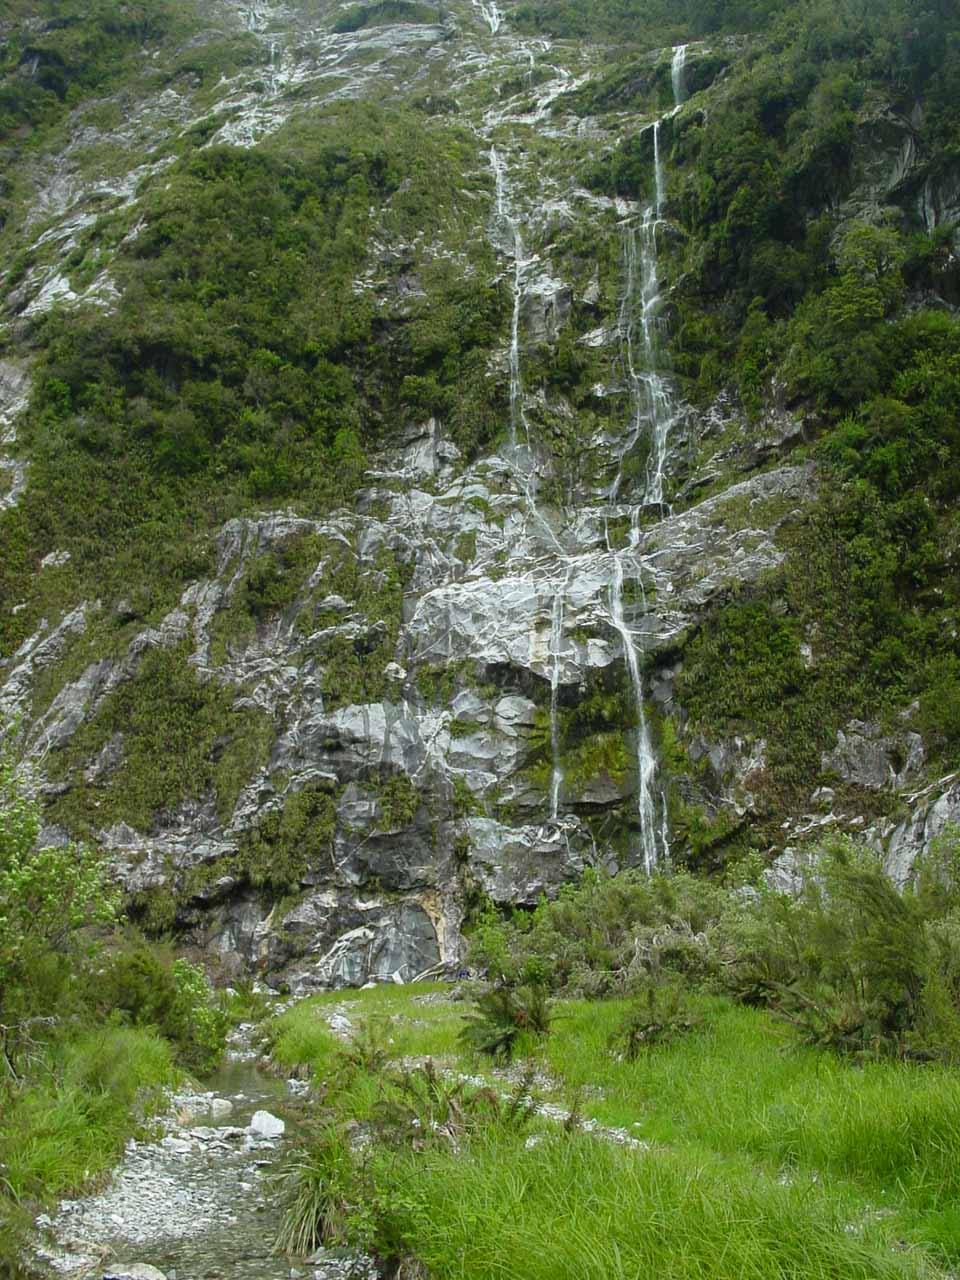 More contextual look at the ephemeral waterfalls at the end of yet another detour off the Milford Track